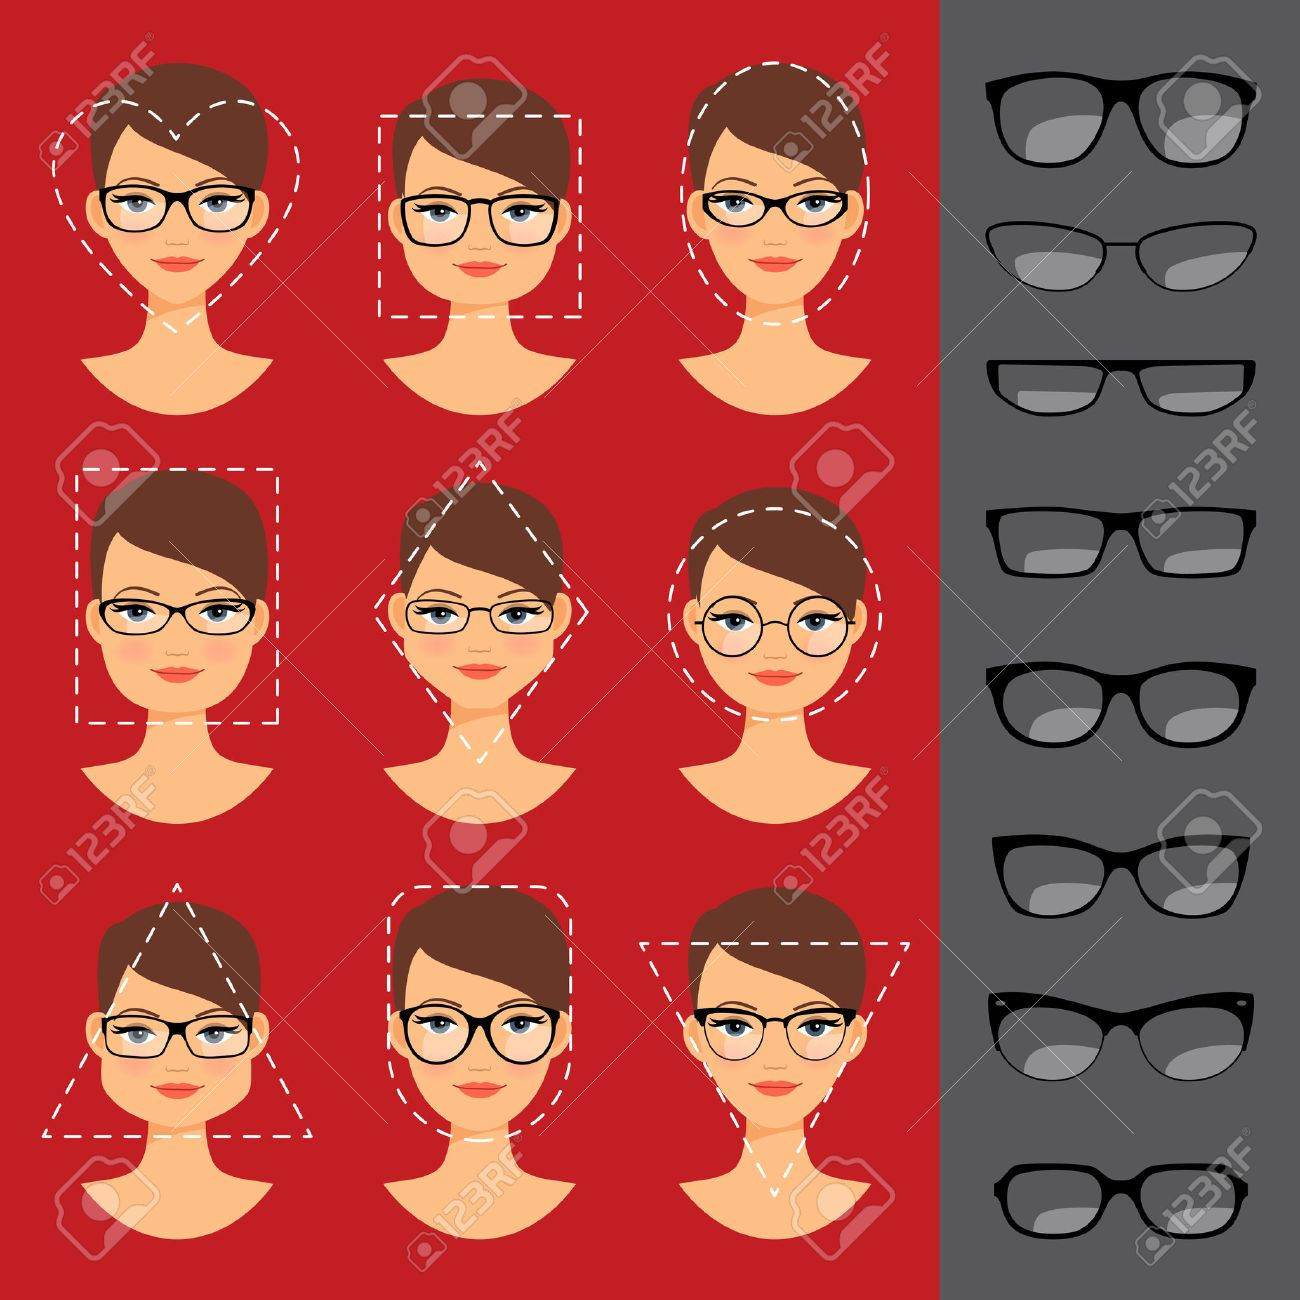 Different glasses shapes for different face shapes. illustration - 56382080